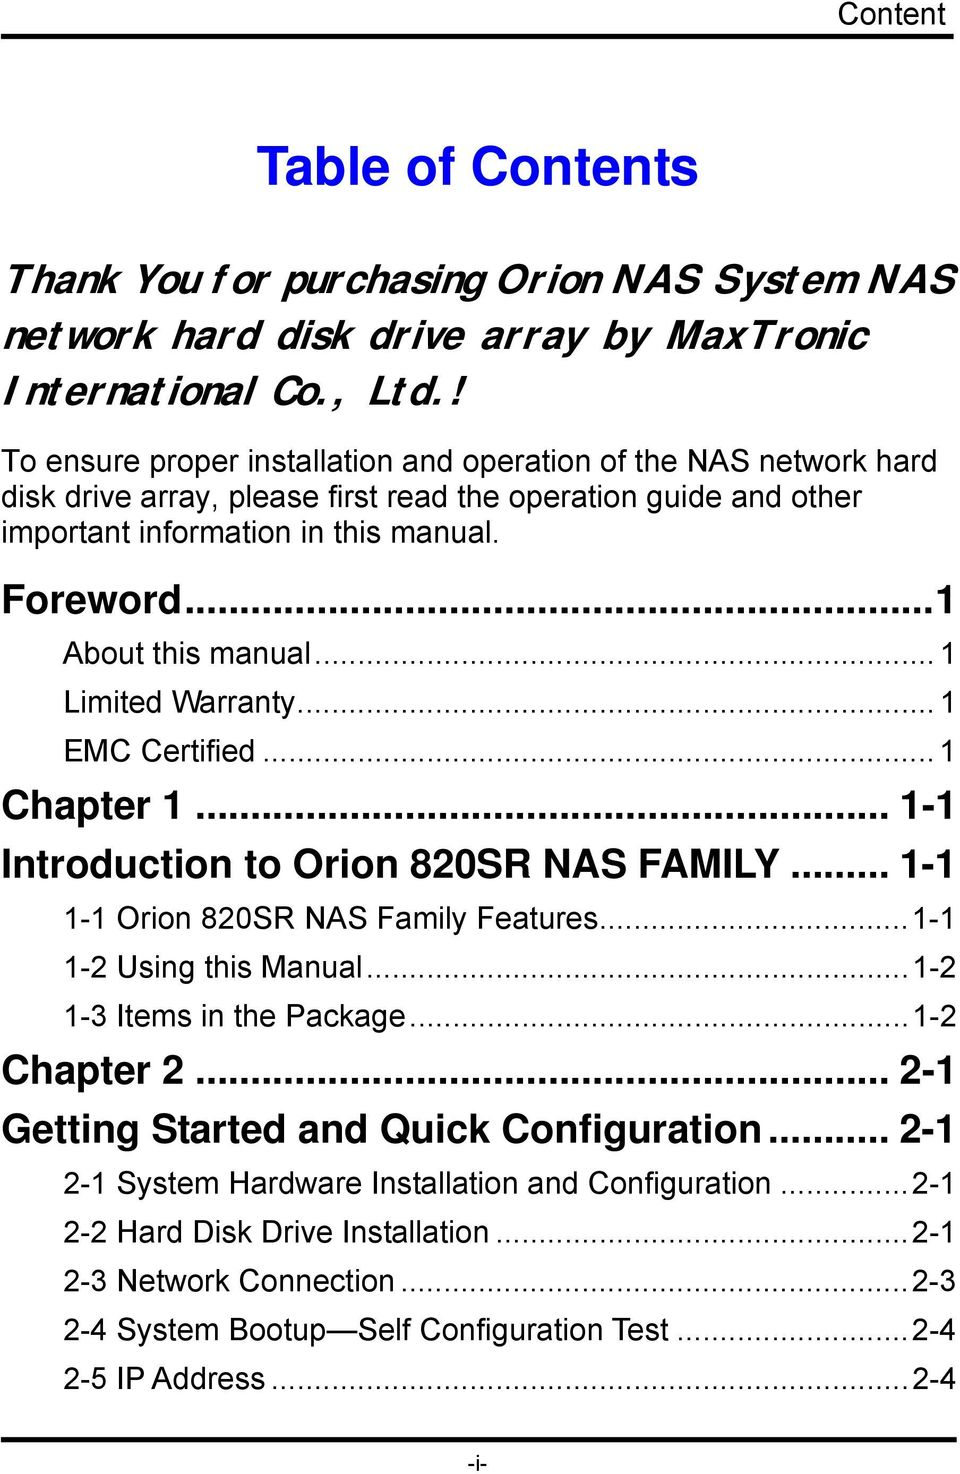 ..1 About this manual... 1 Limited Warranty... 1 EMC Certified... 1 Chapter 1... 1-1 Introduction to Orion 820SR NAS FAMILY... 1-1 1-1 Orion 820SR NAS Family Features...1-1 1-2 Using this Manual.